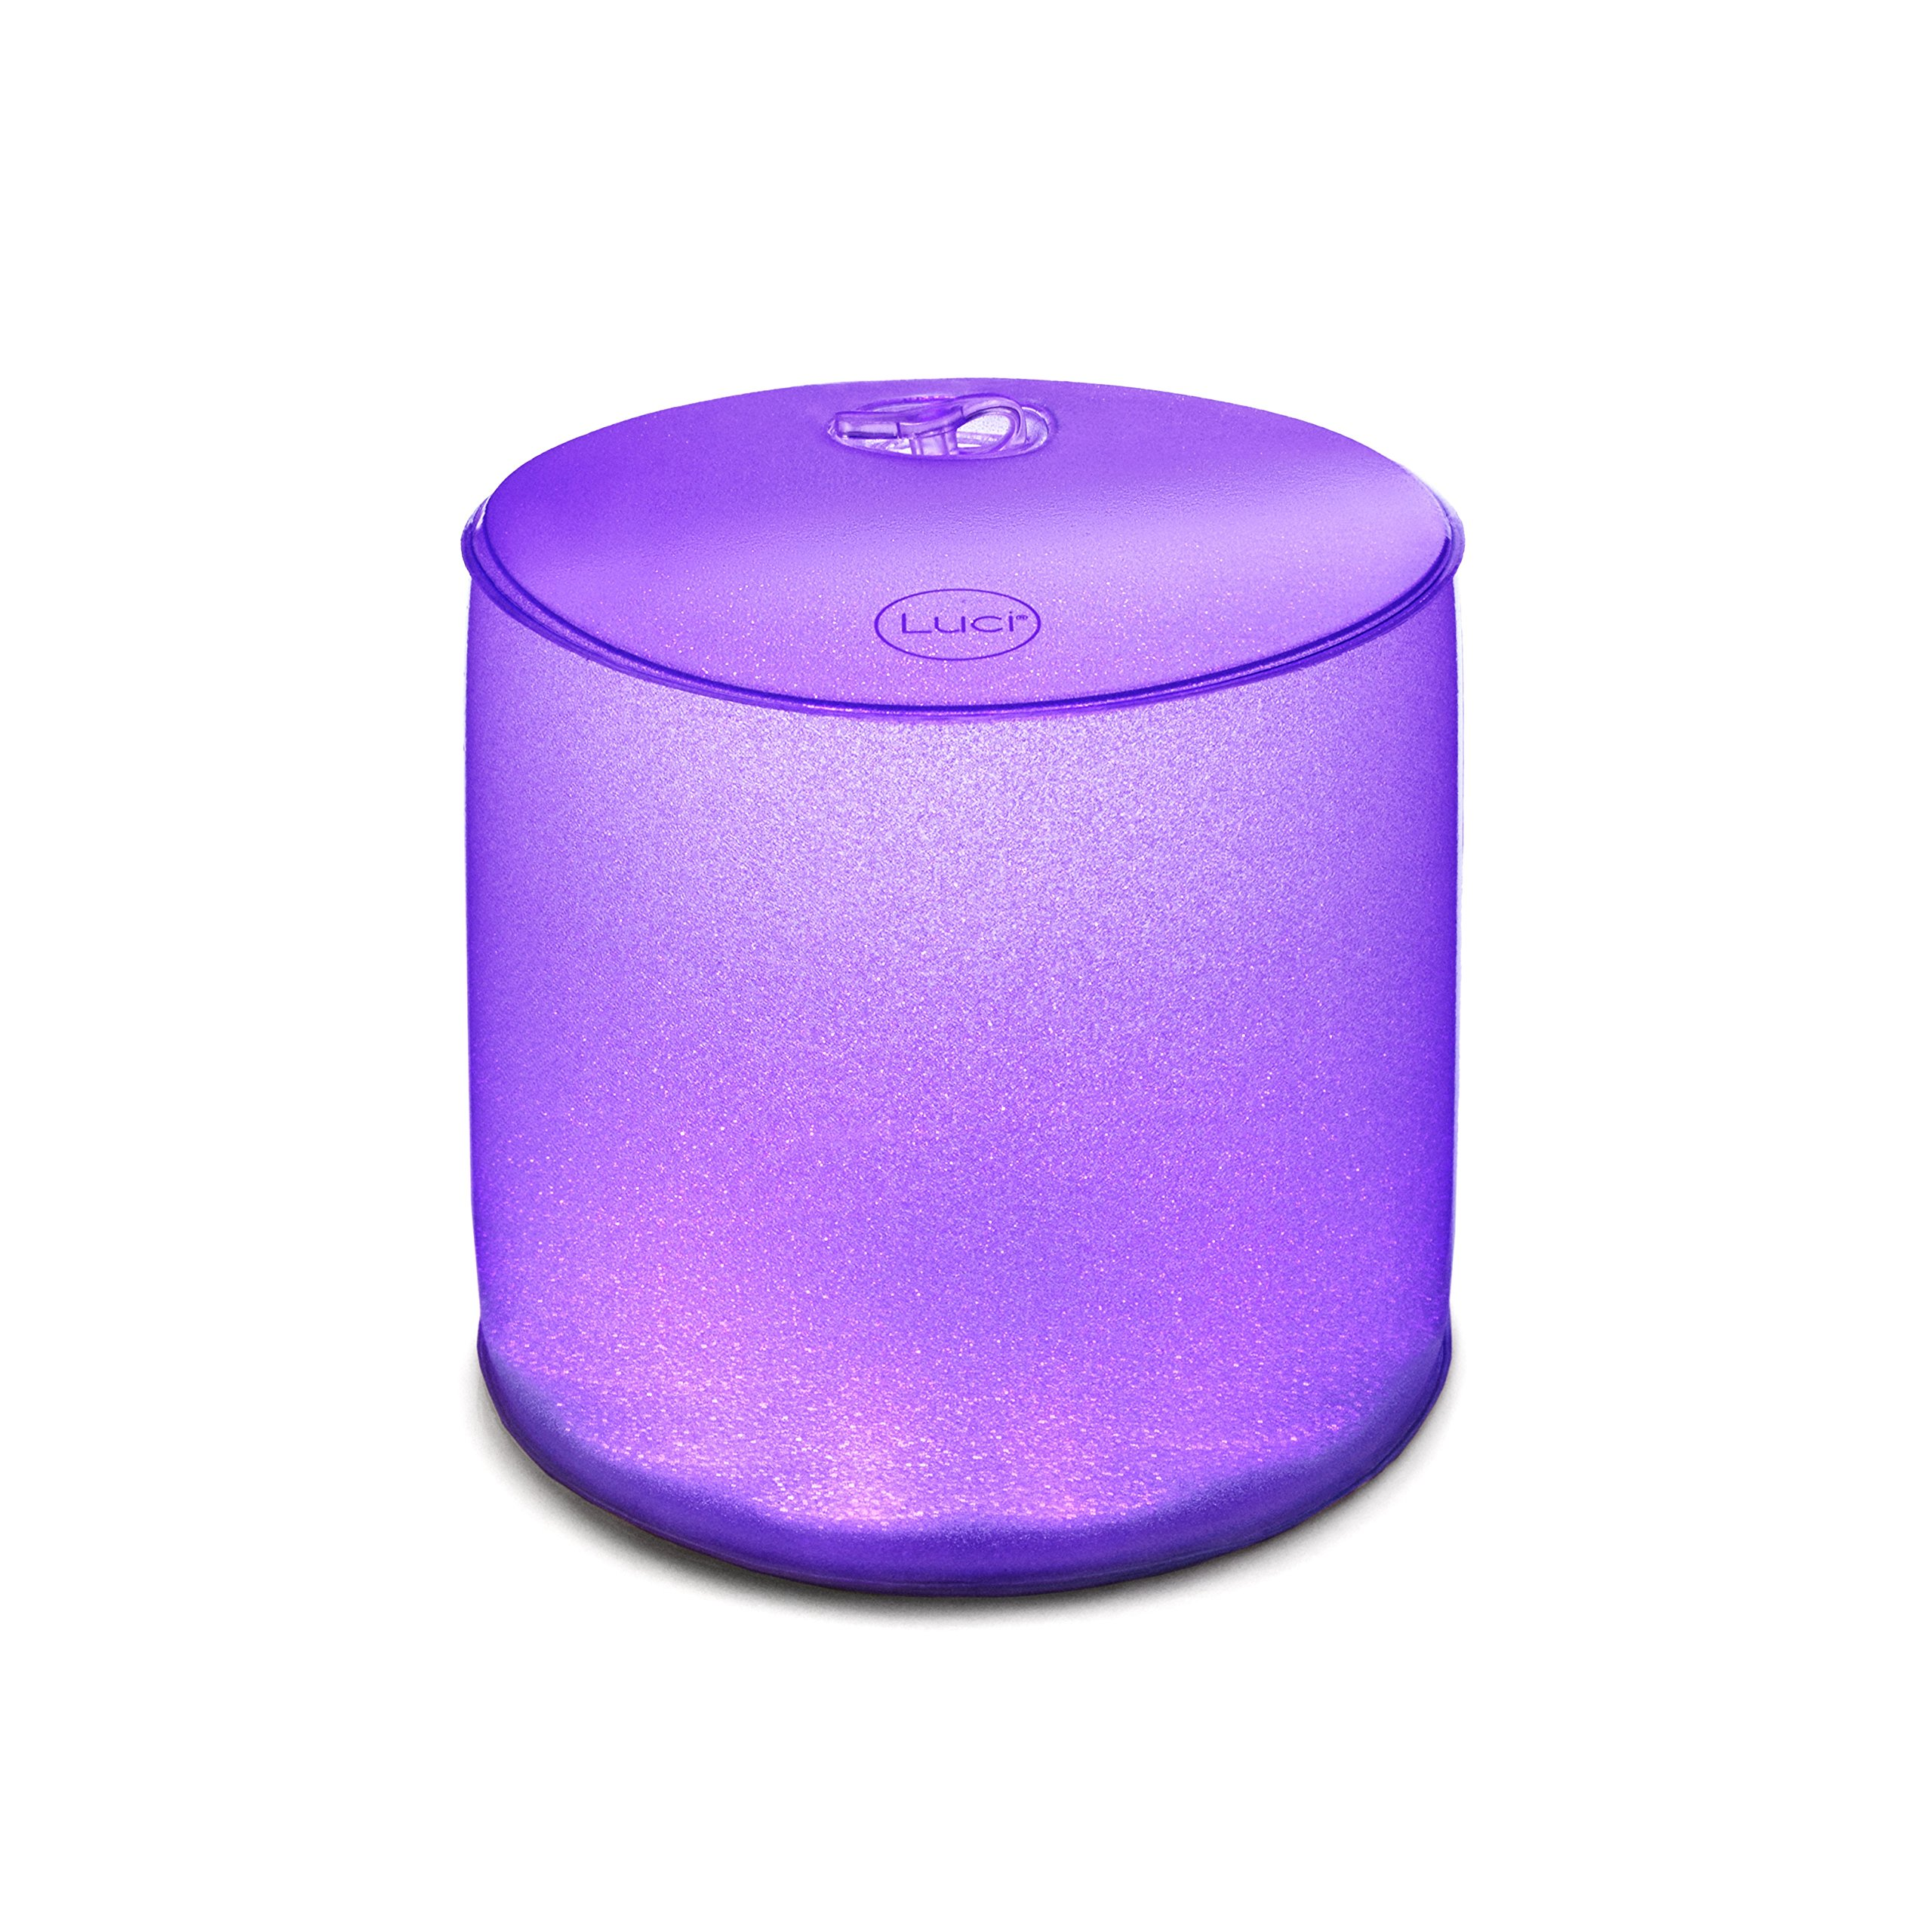 MPOWERD Luci Color - Multi-Color Inflatable Solar Light, Sparkle Finish